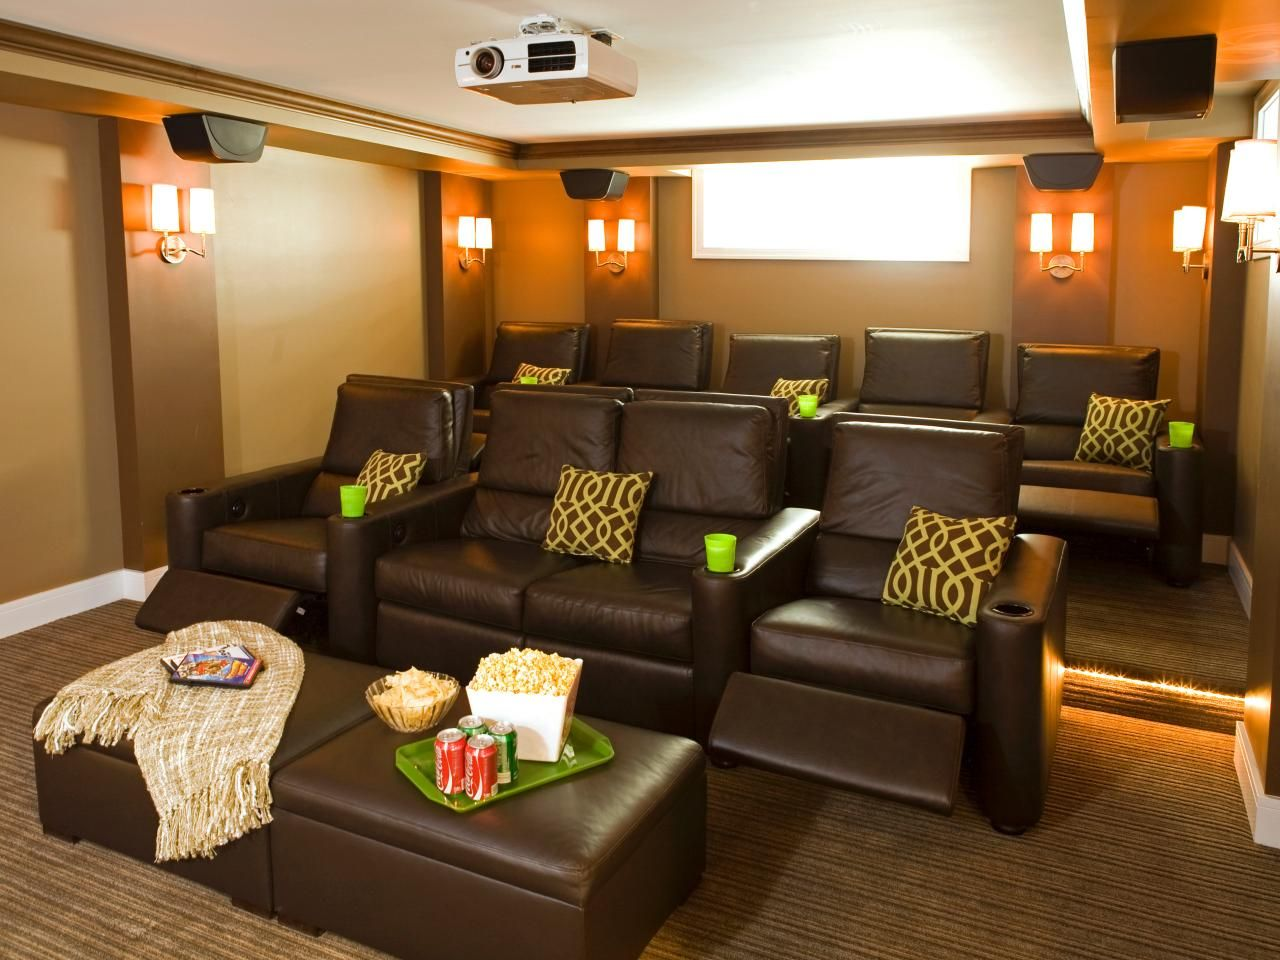 A simple sleek modern home theater features large automatic